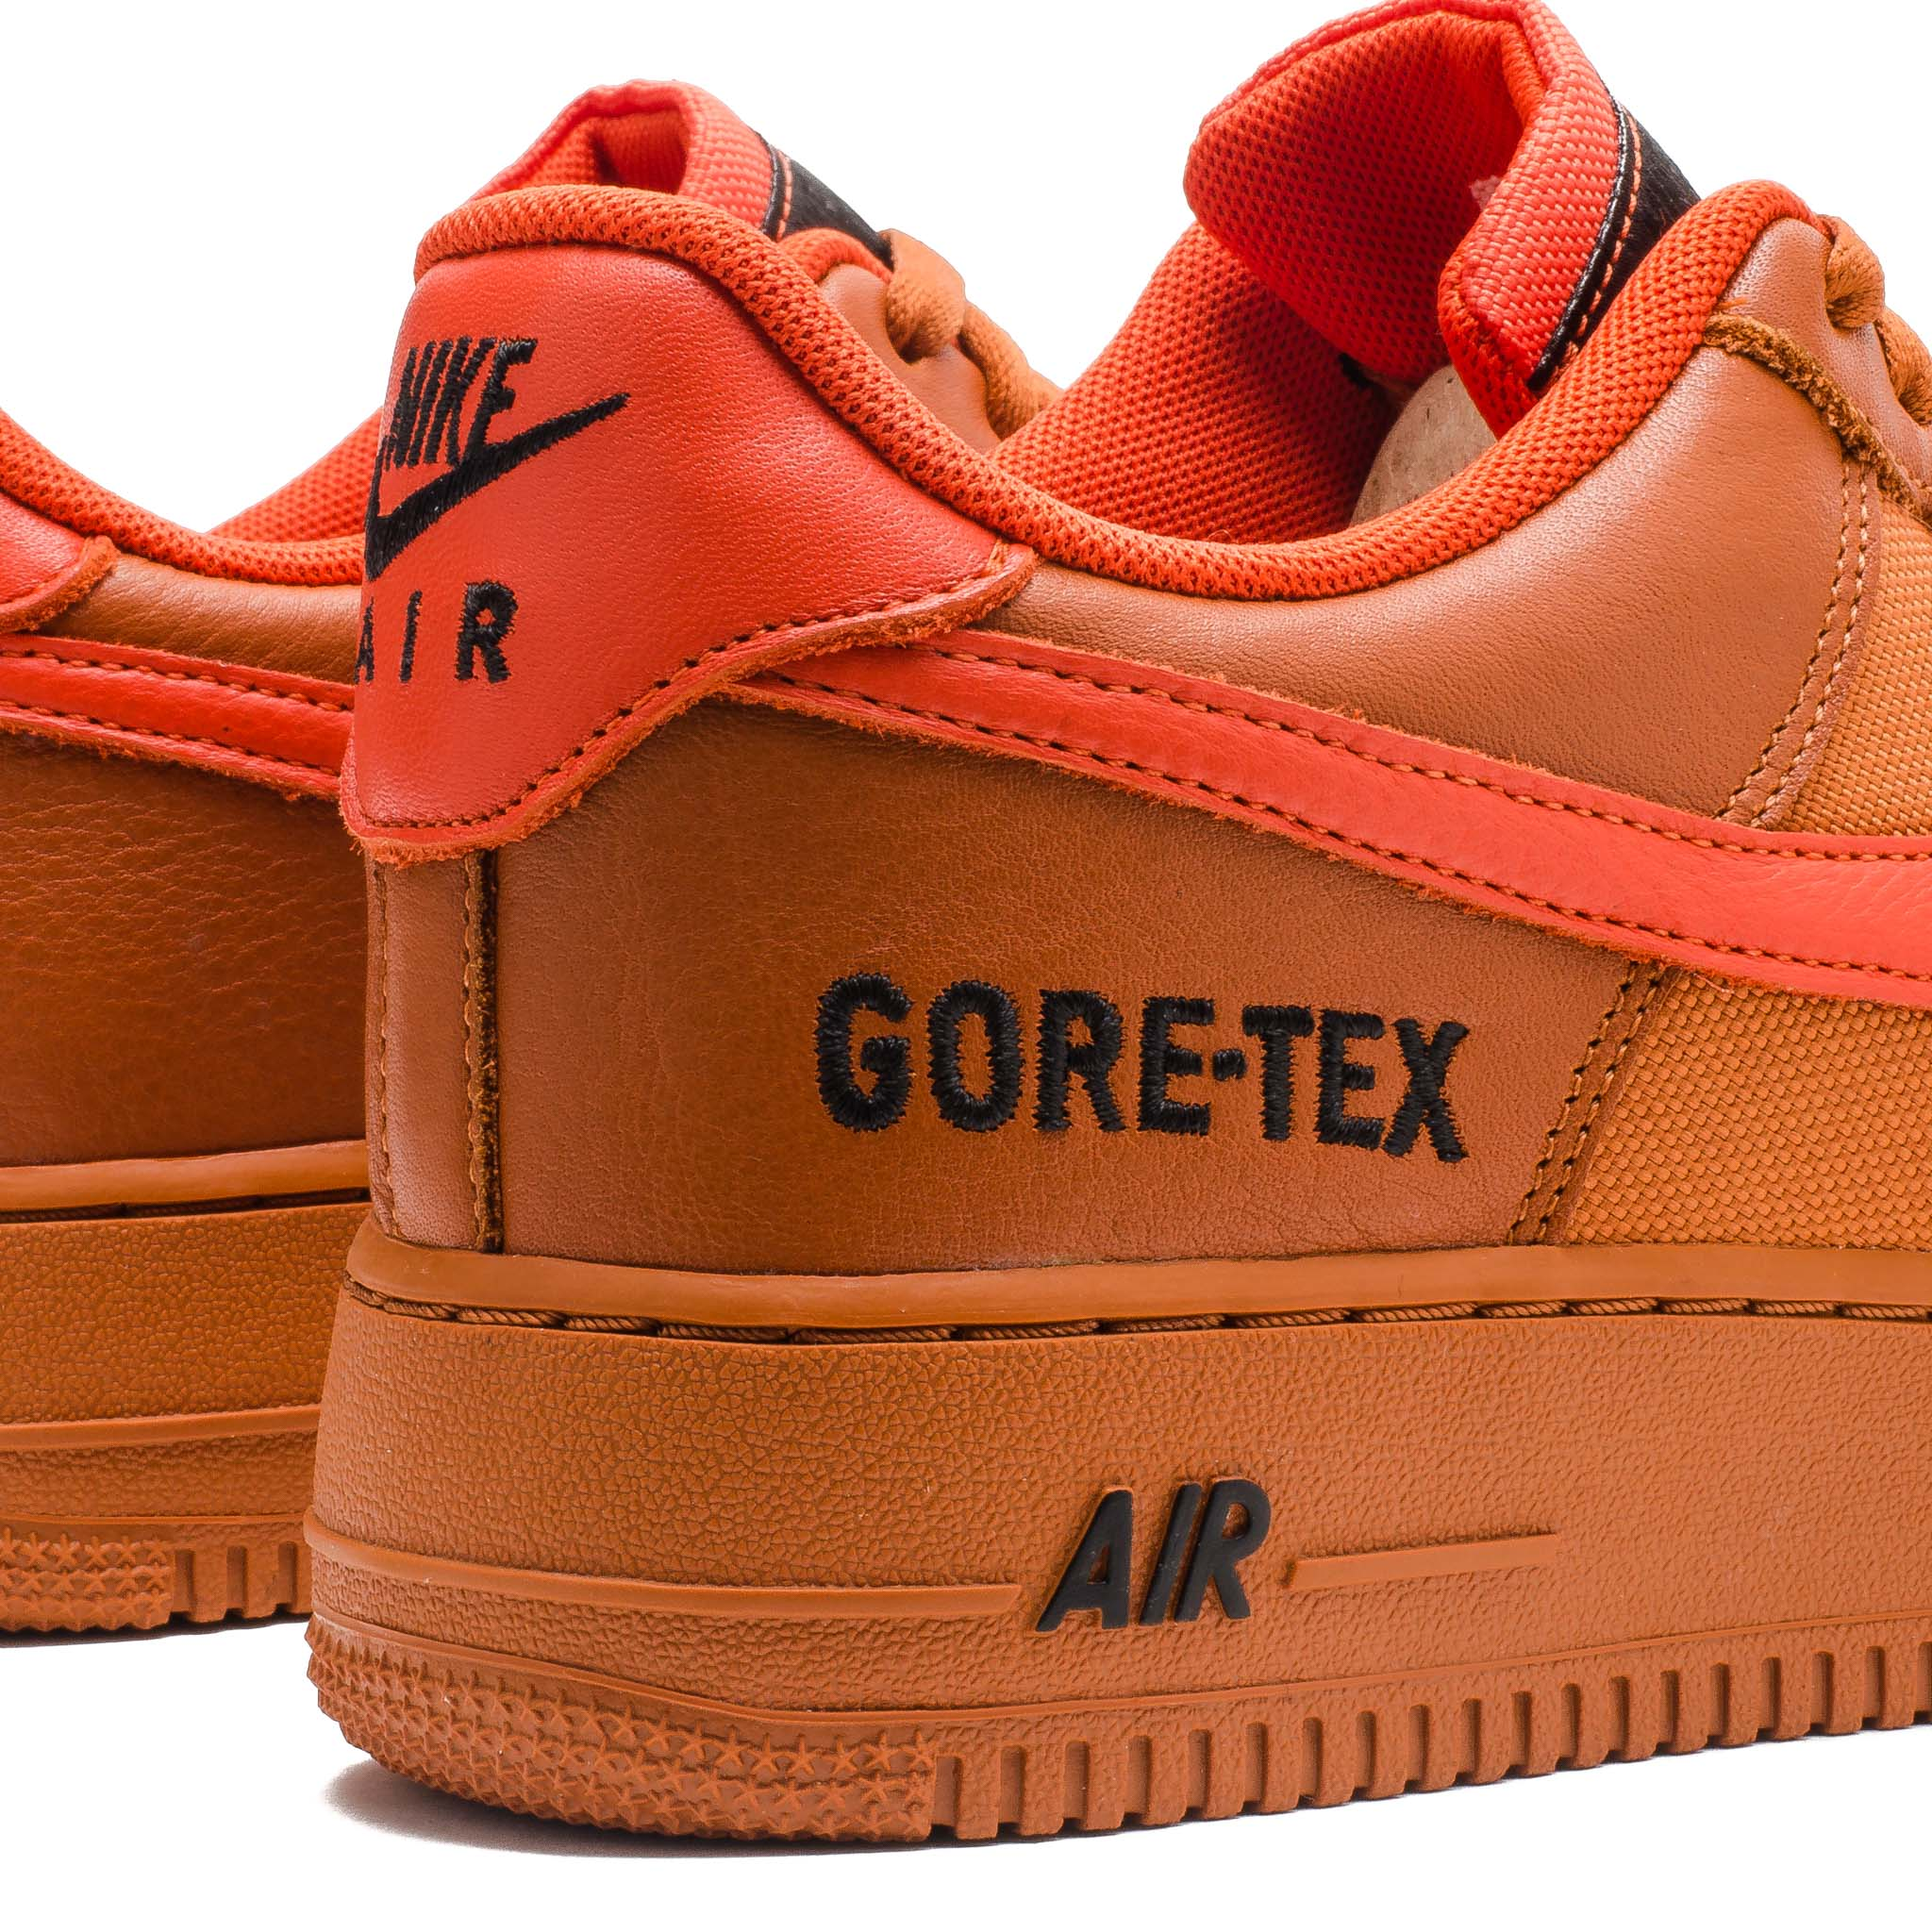 Air Force 1 GTX CK2630-800 Desert Orange